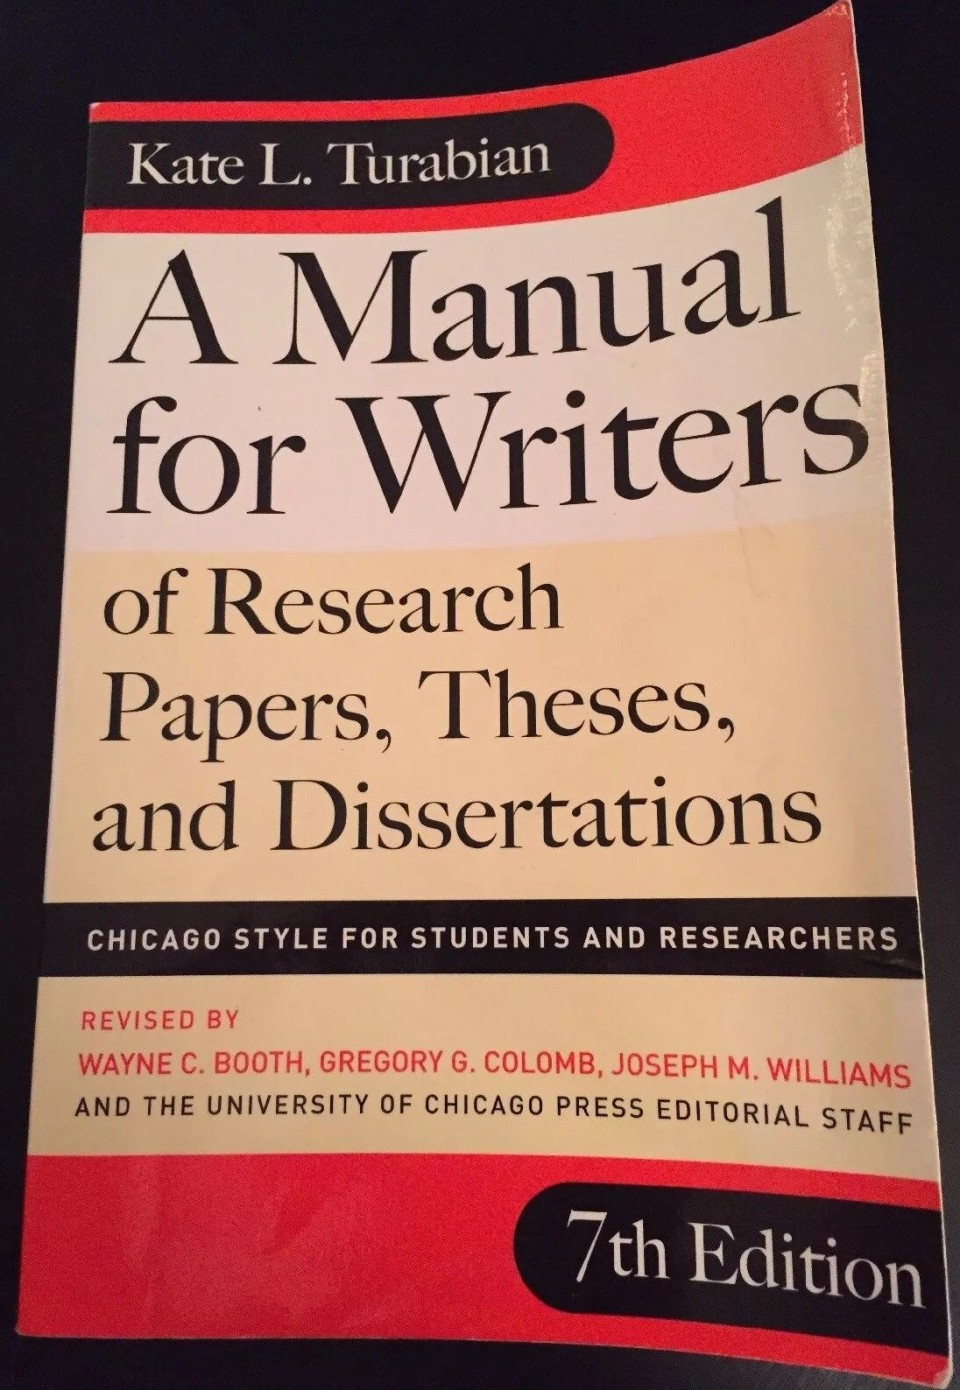 018 Research Paper Manual For Writers Of Papers Theses And Dissertations S Magnificent A Amazon 9th Edition 8th 13 960